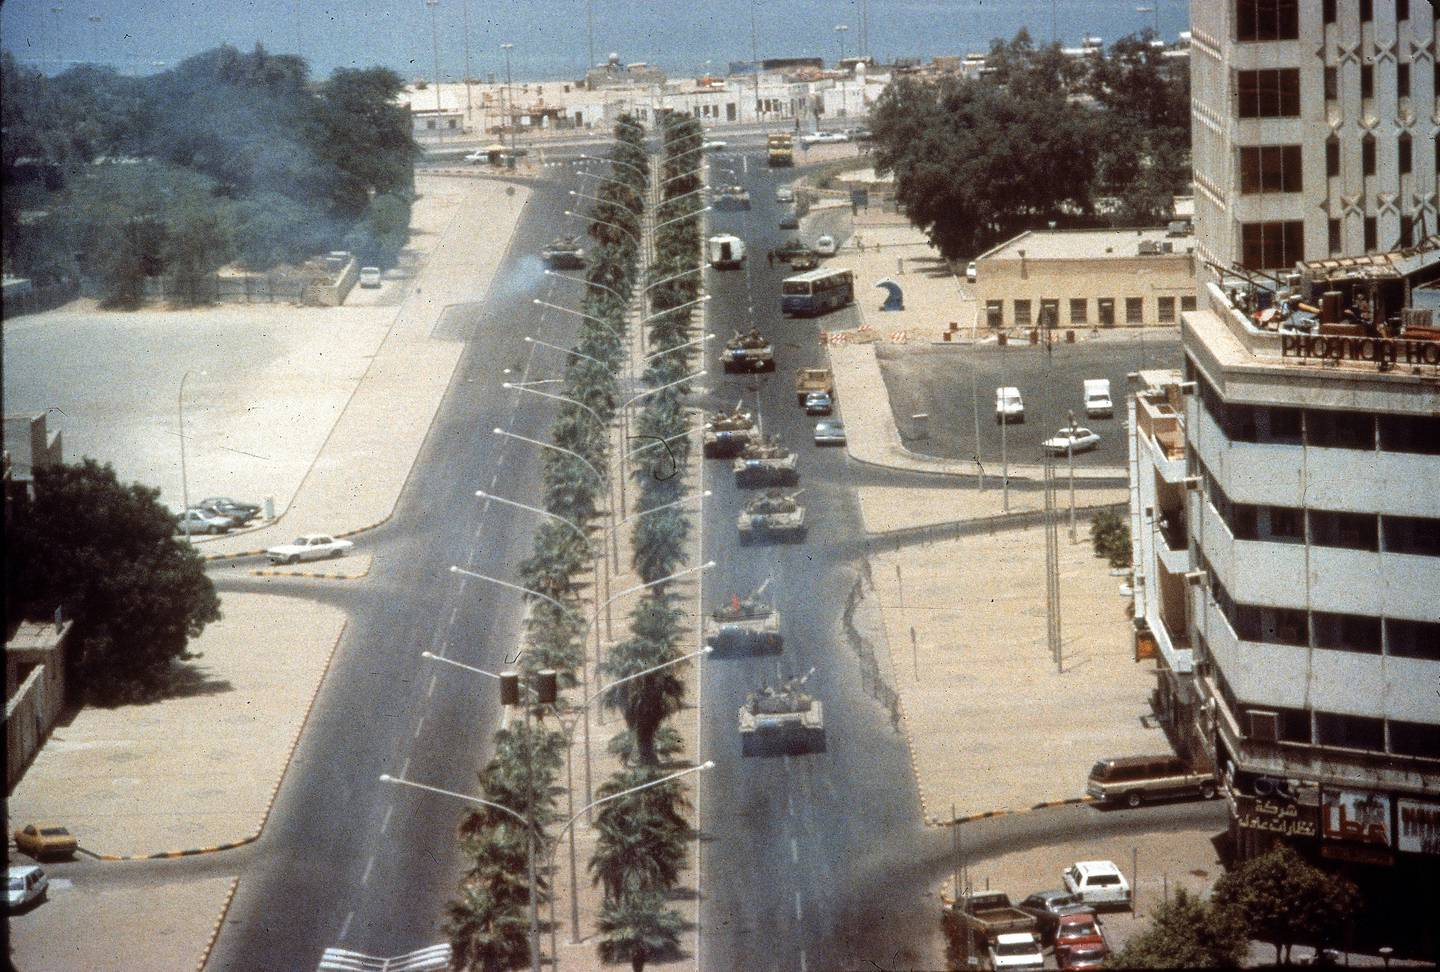 RESIZED Aerial view of Iraqi tanks as they drive along a tree-lined boulevard during that country's invasion of Kuwait City, Kuwait, August 2, 1990. (Photo by The LIFE Images Collection/Getty Images)